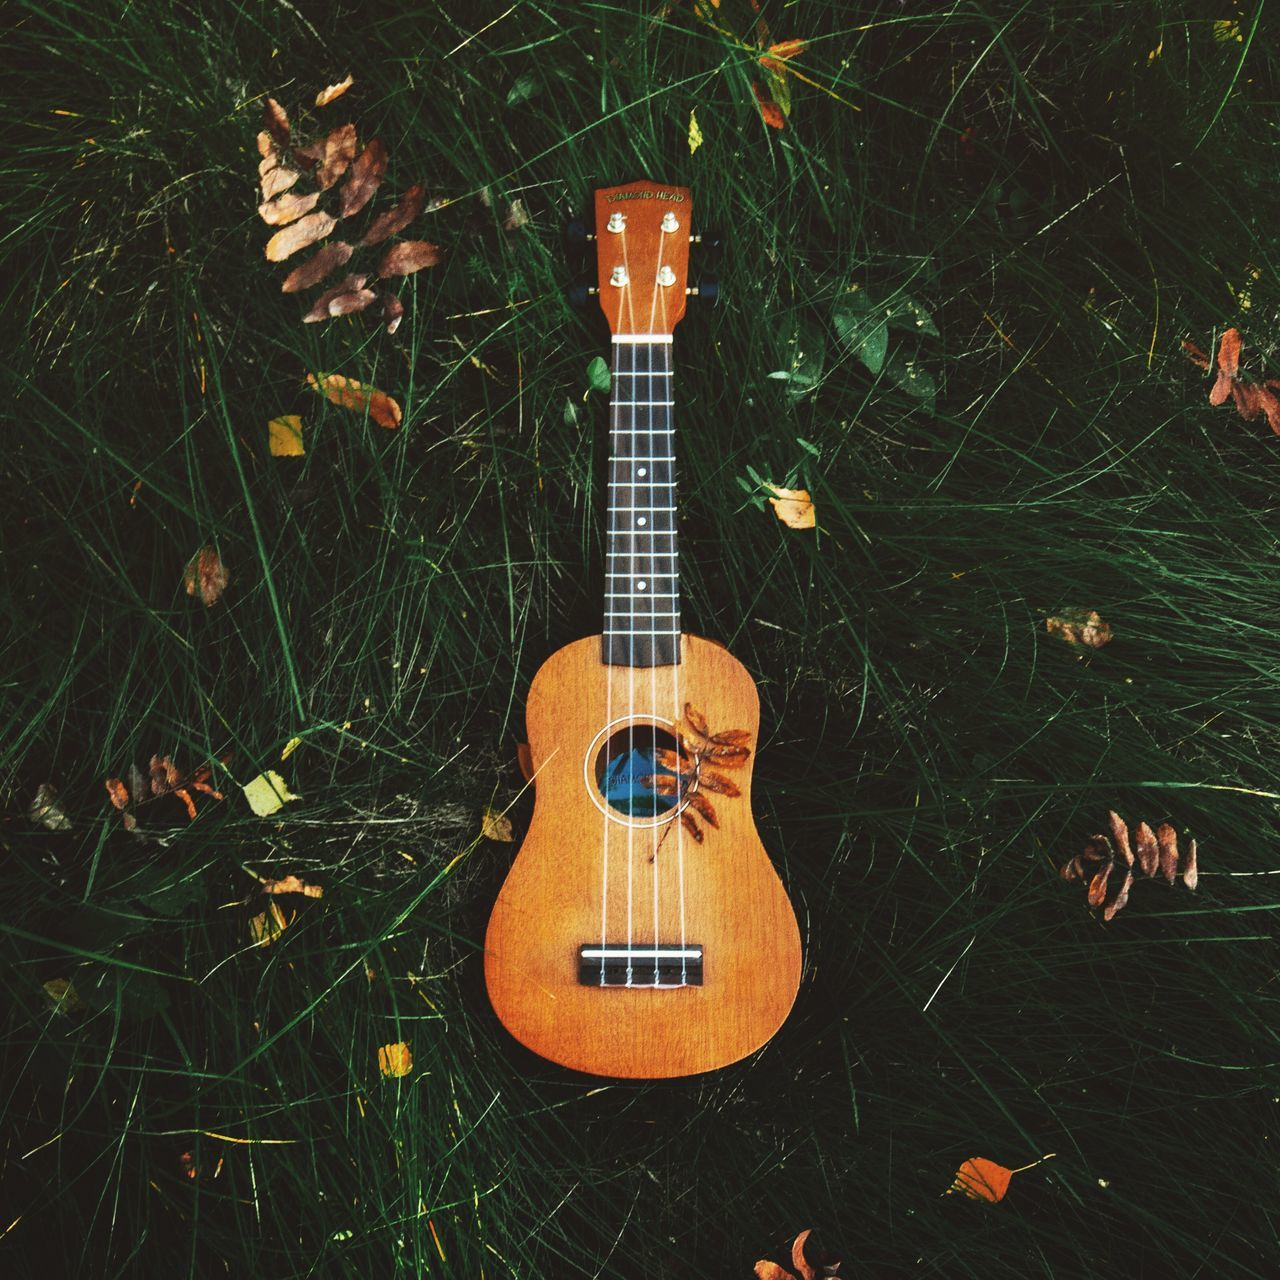 music, guitar, musical instrument, musical instrument string, acoustic guitar, fretboard, arts culture and entertainment, high angle view, string instrument, grass, woodwind instrument, no people, day, indoors, close-up